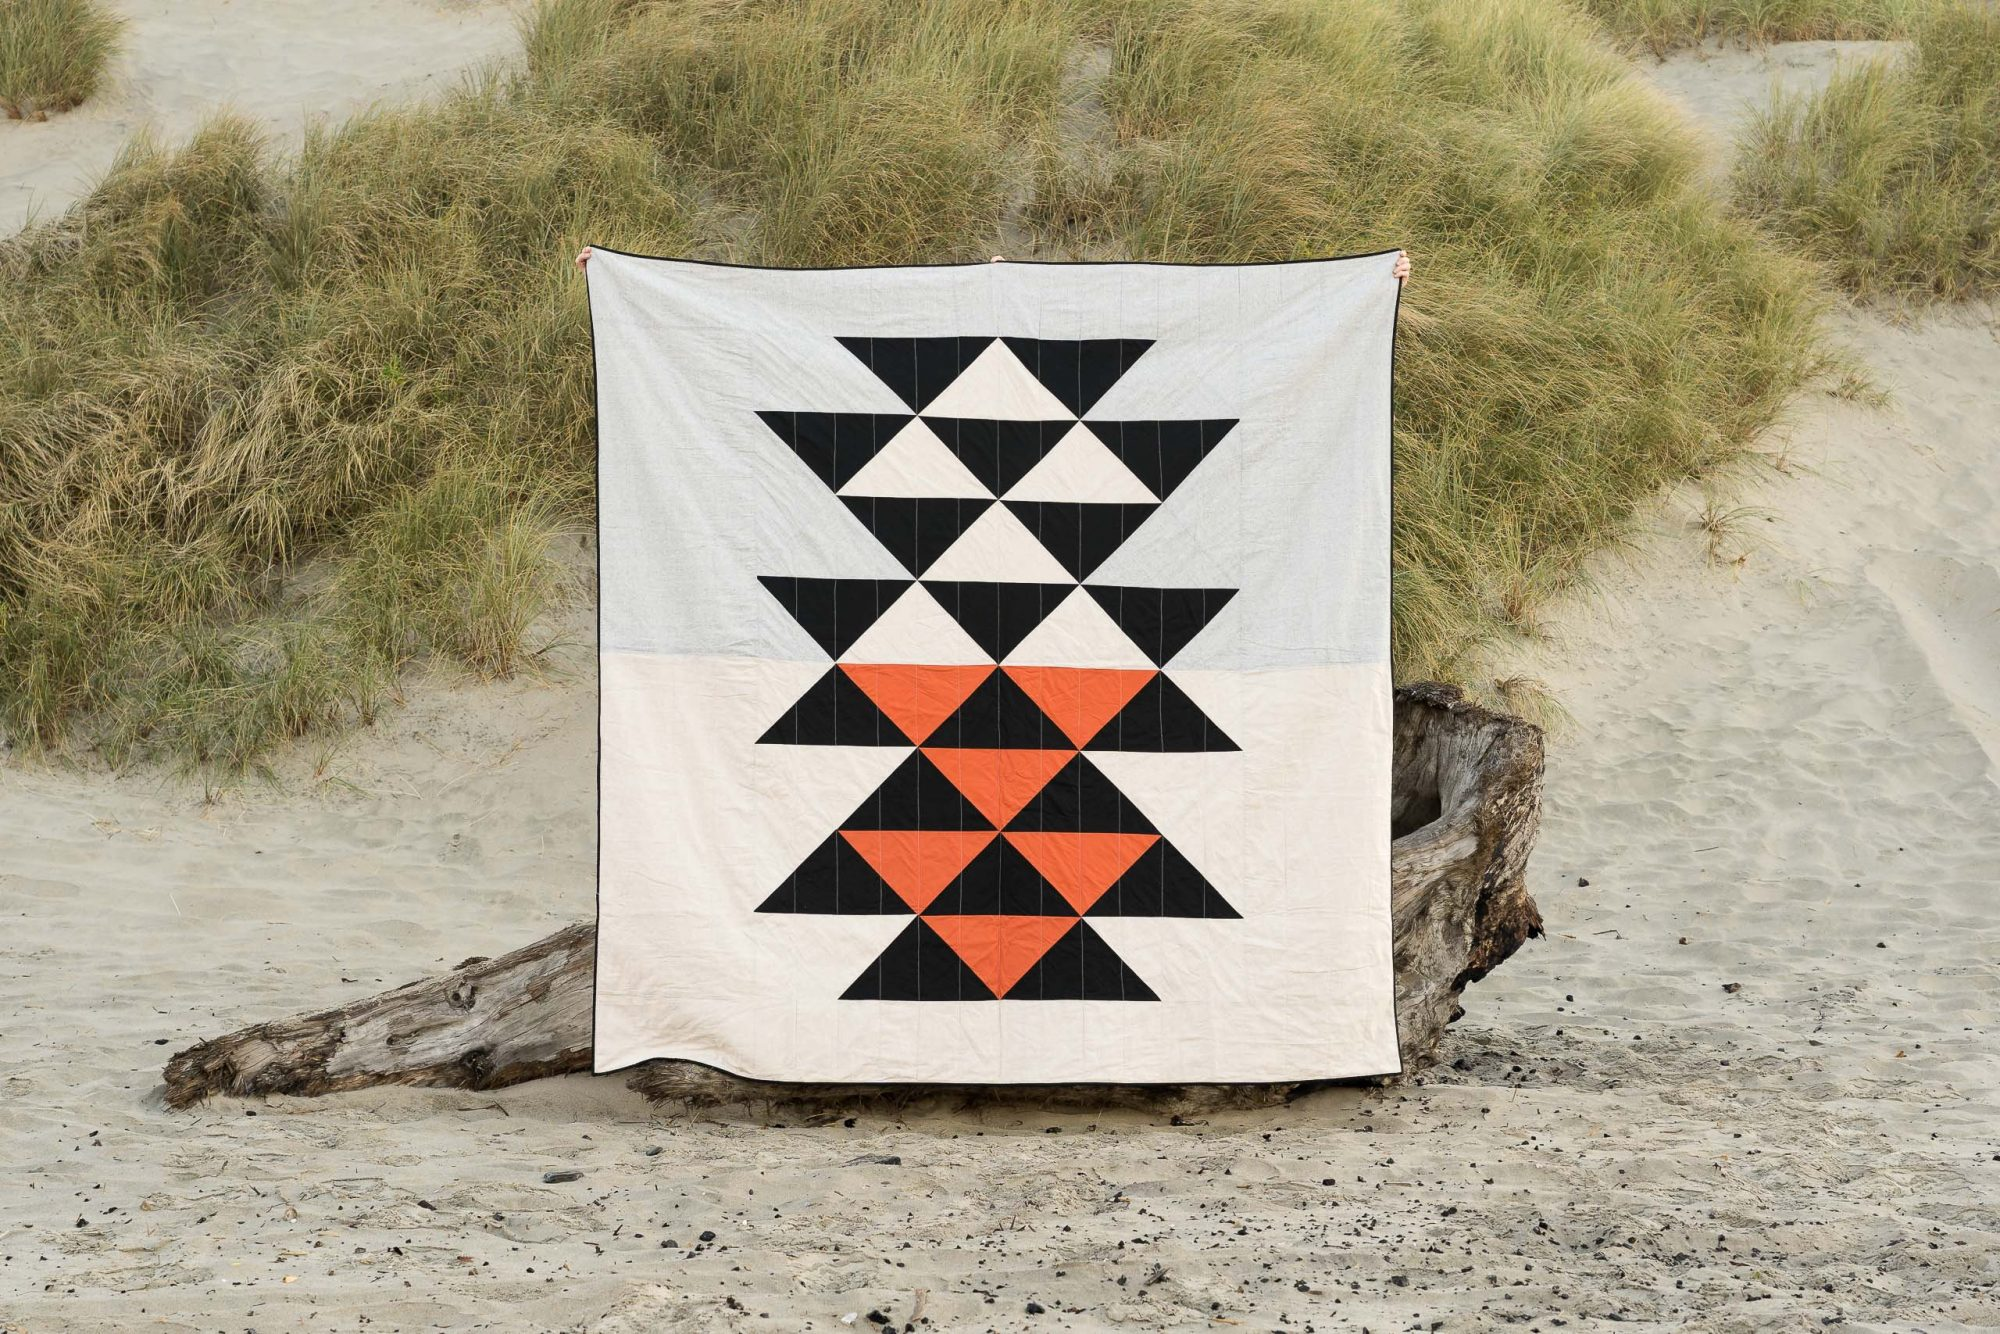 South Western style quilt